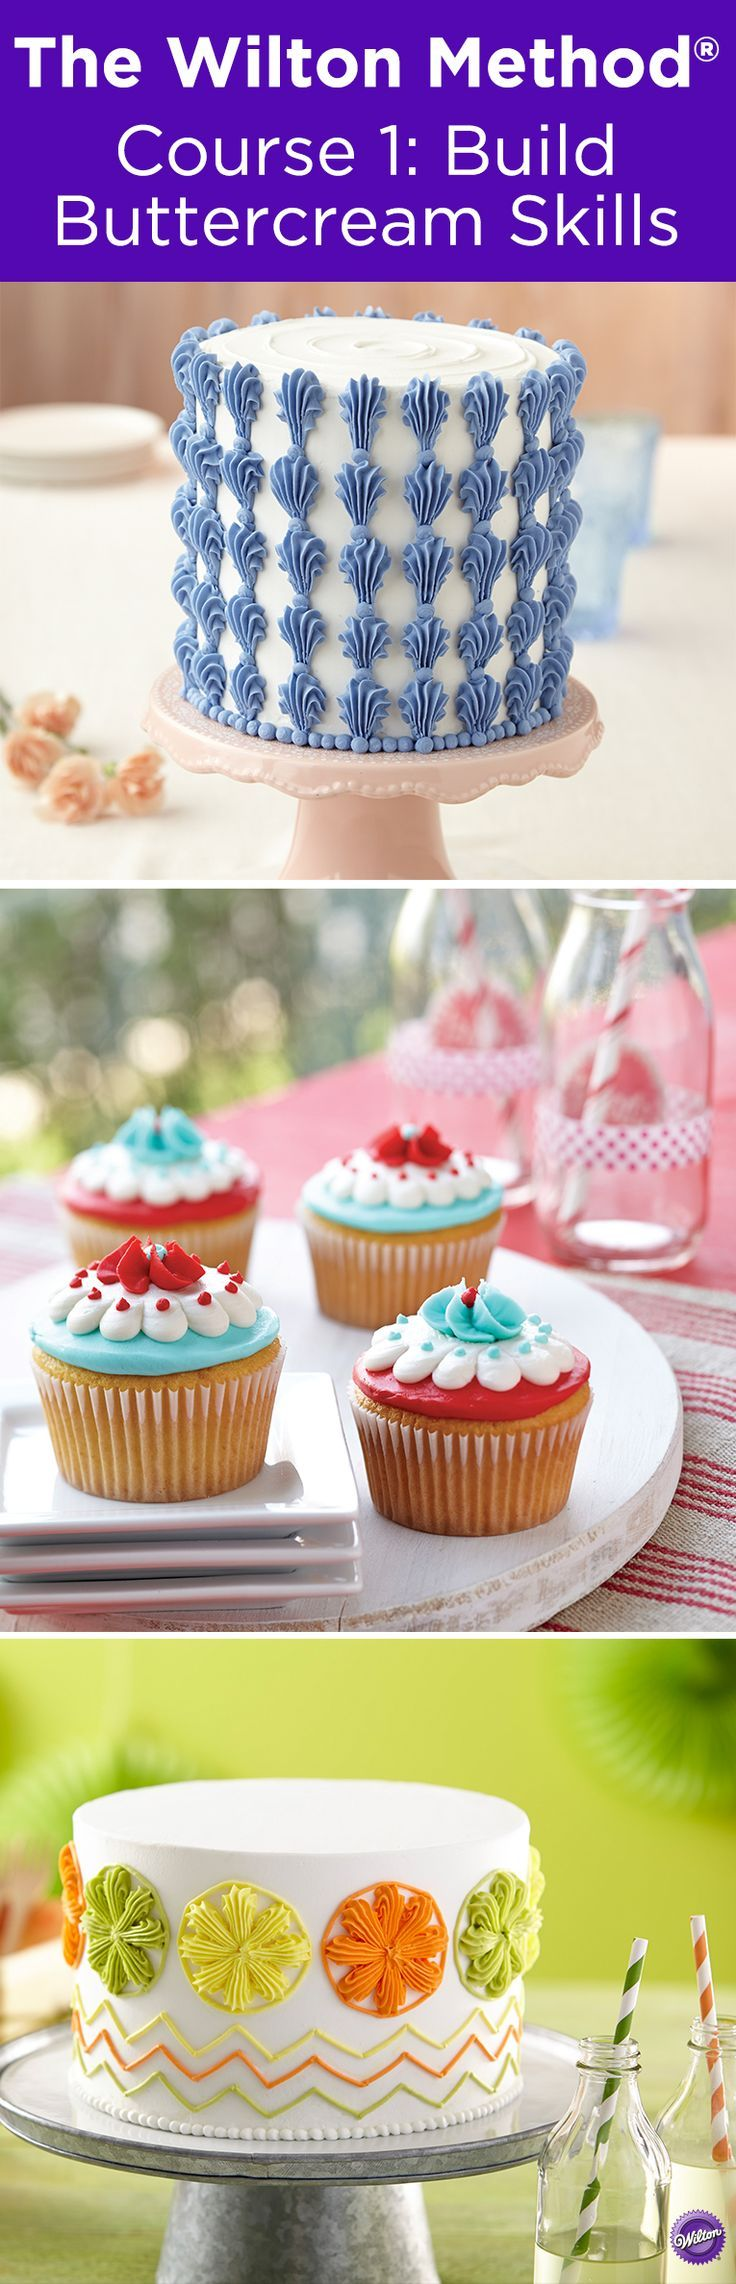 How to decorate cakes with buttercream - Learn how to decorate cakes and sweet treats with basic buttercream techniques and six simple-to-pipe flowers that transform ordinary cakes into extraordinary results when you sign up for The Wilton Method Course 1: Build Buttercream Skills.